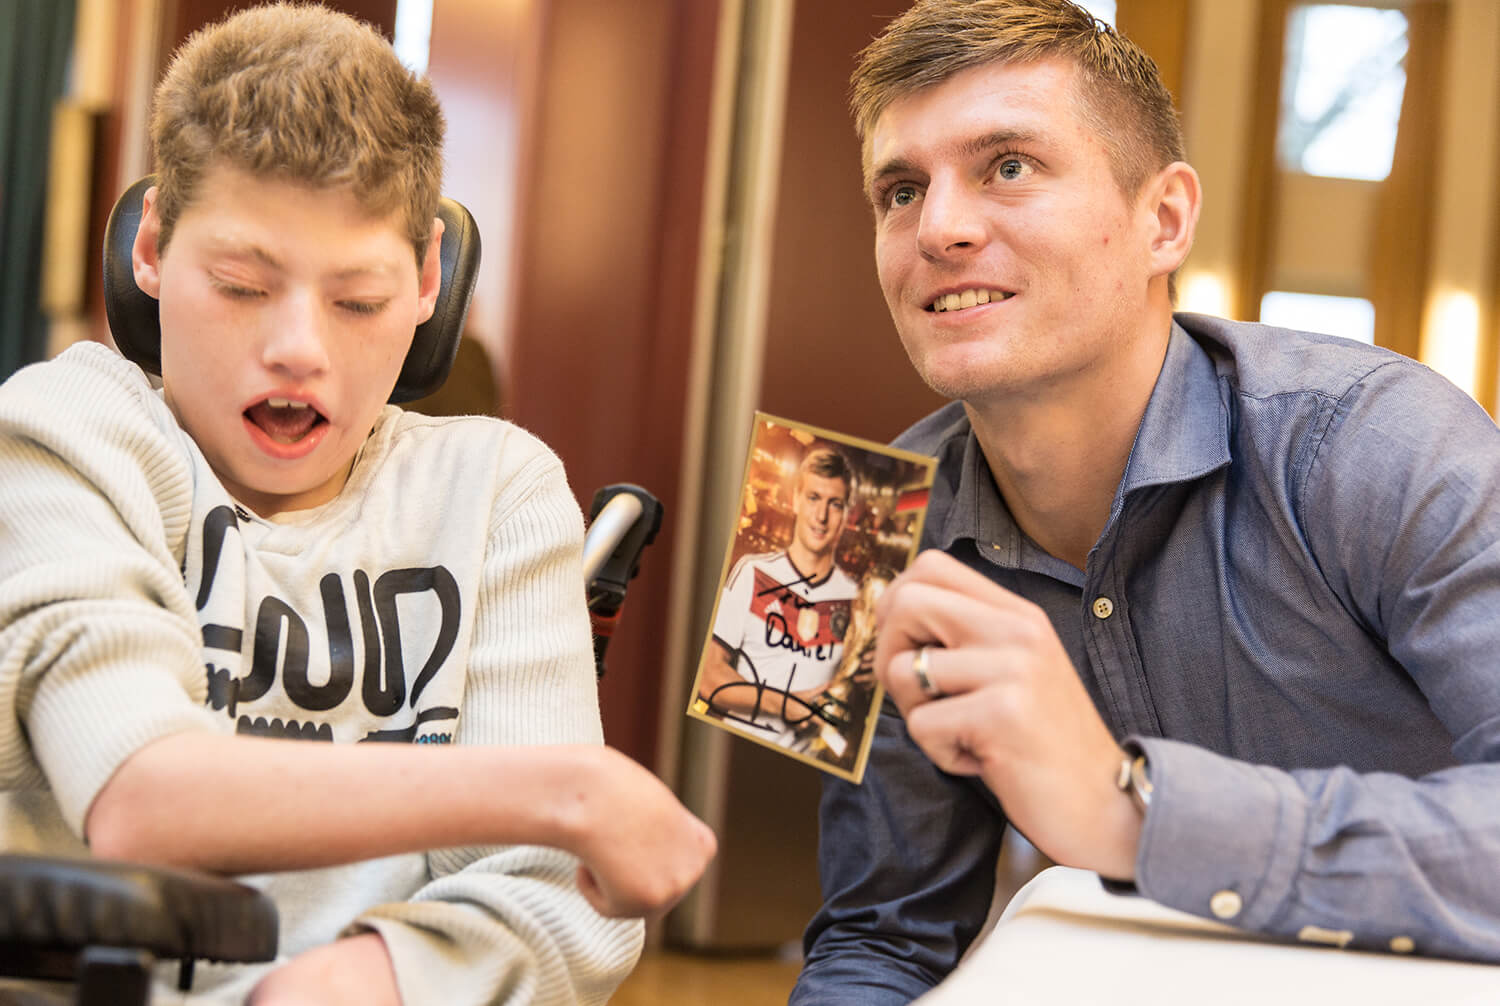 Toni Kroos and a boy